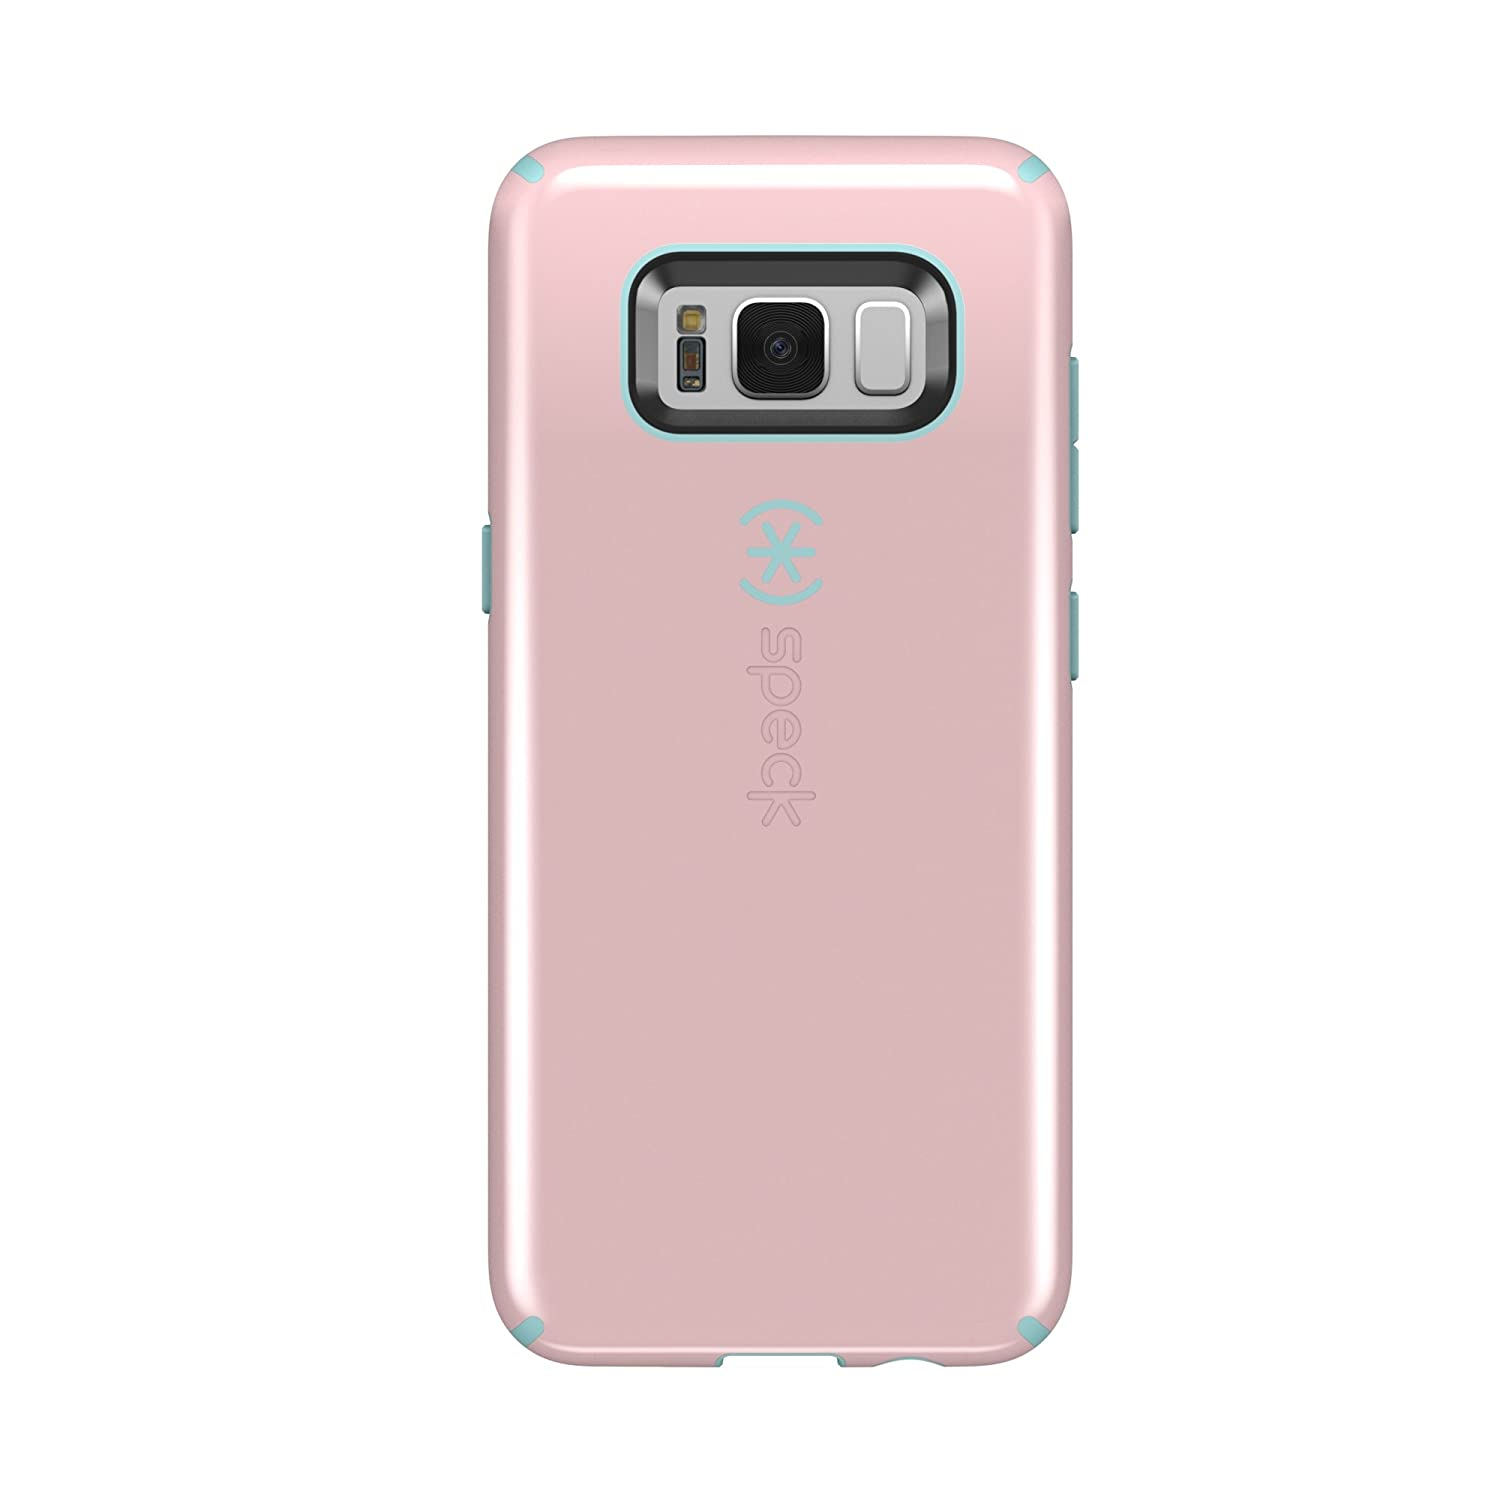 Speck S 90210 C085 Candyshell Cell Phone Case For Galaxy S8 Quartz